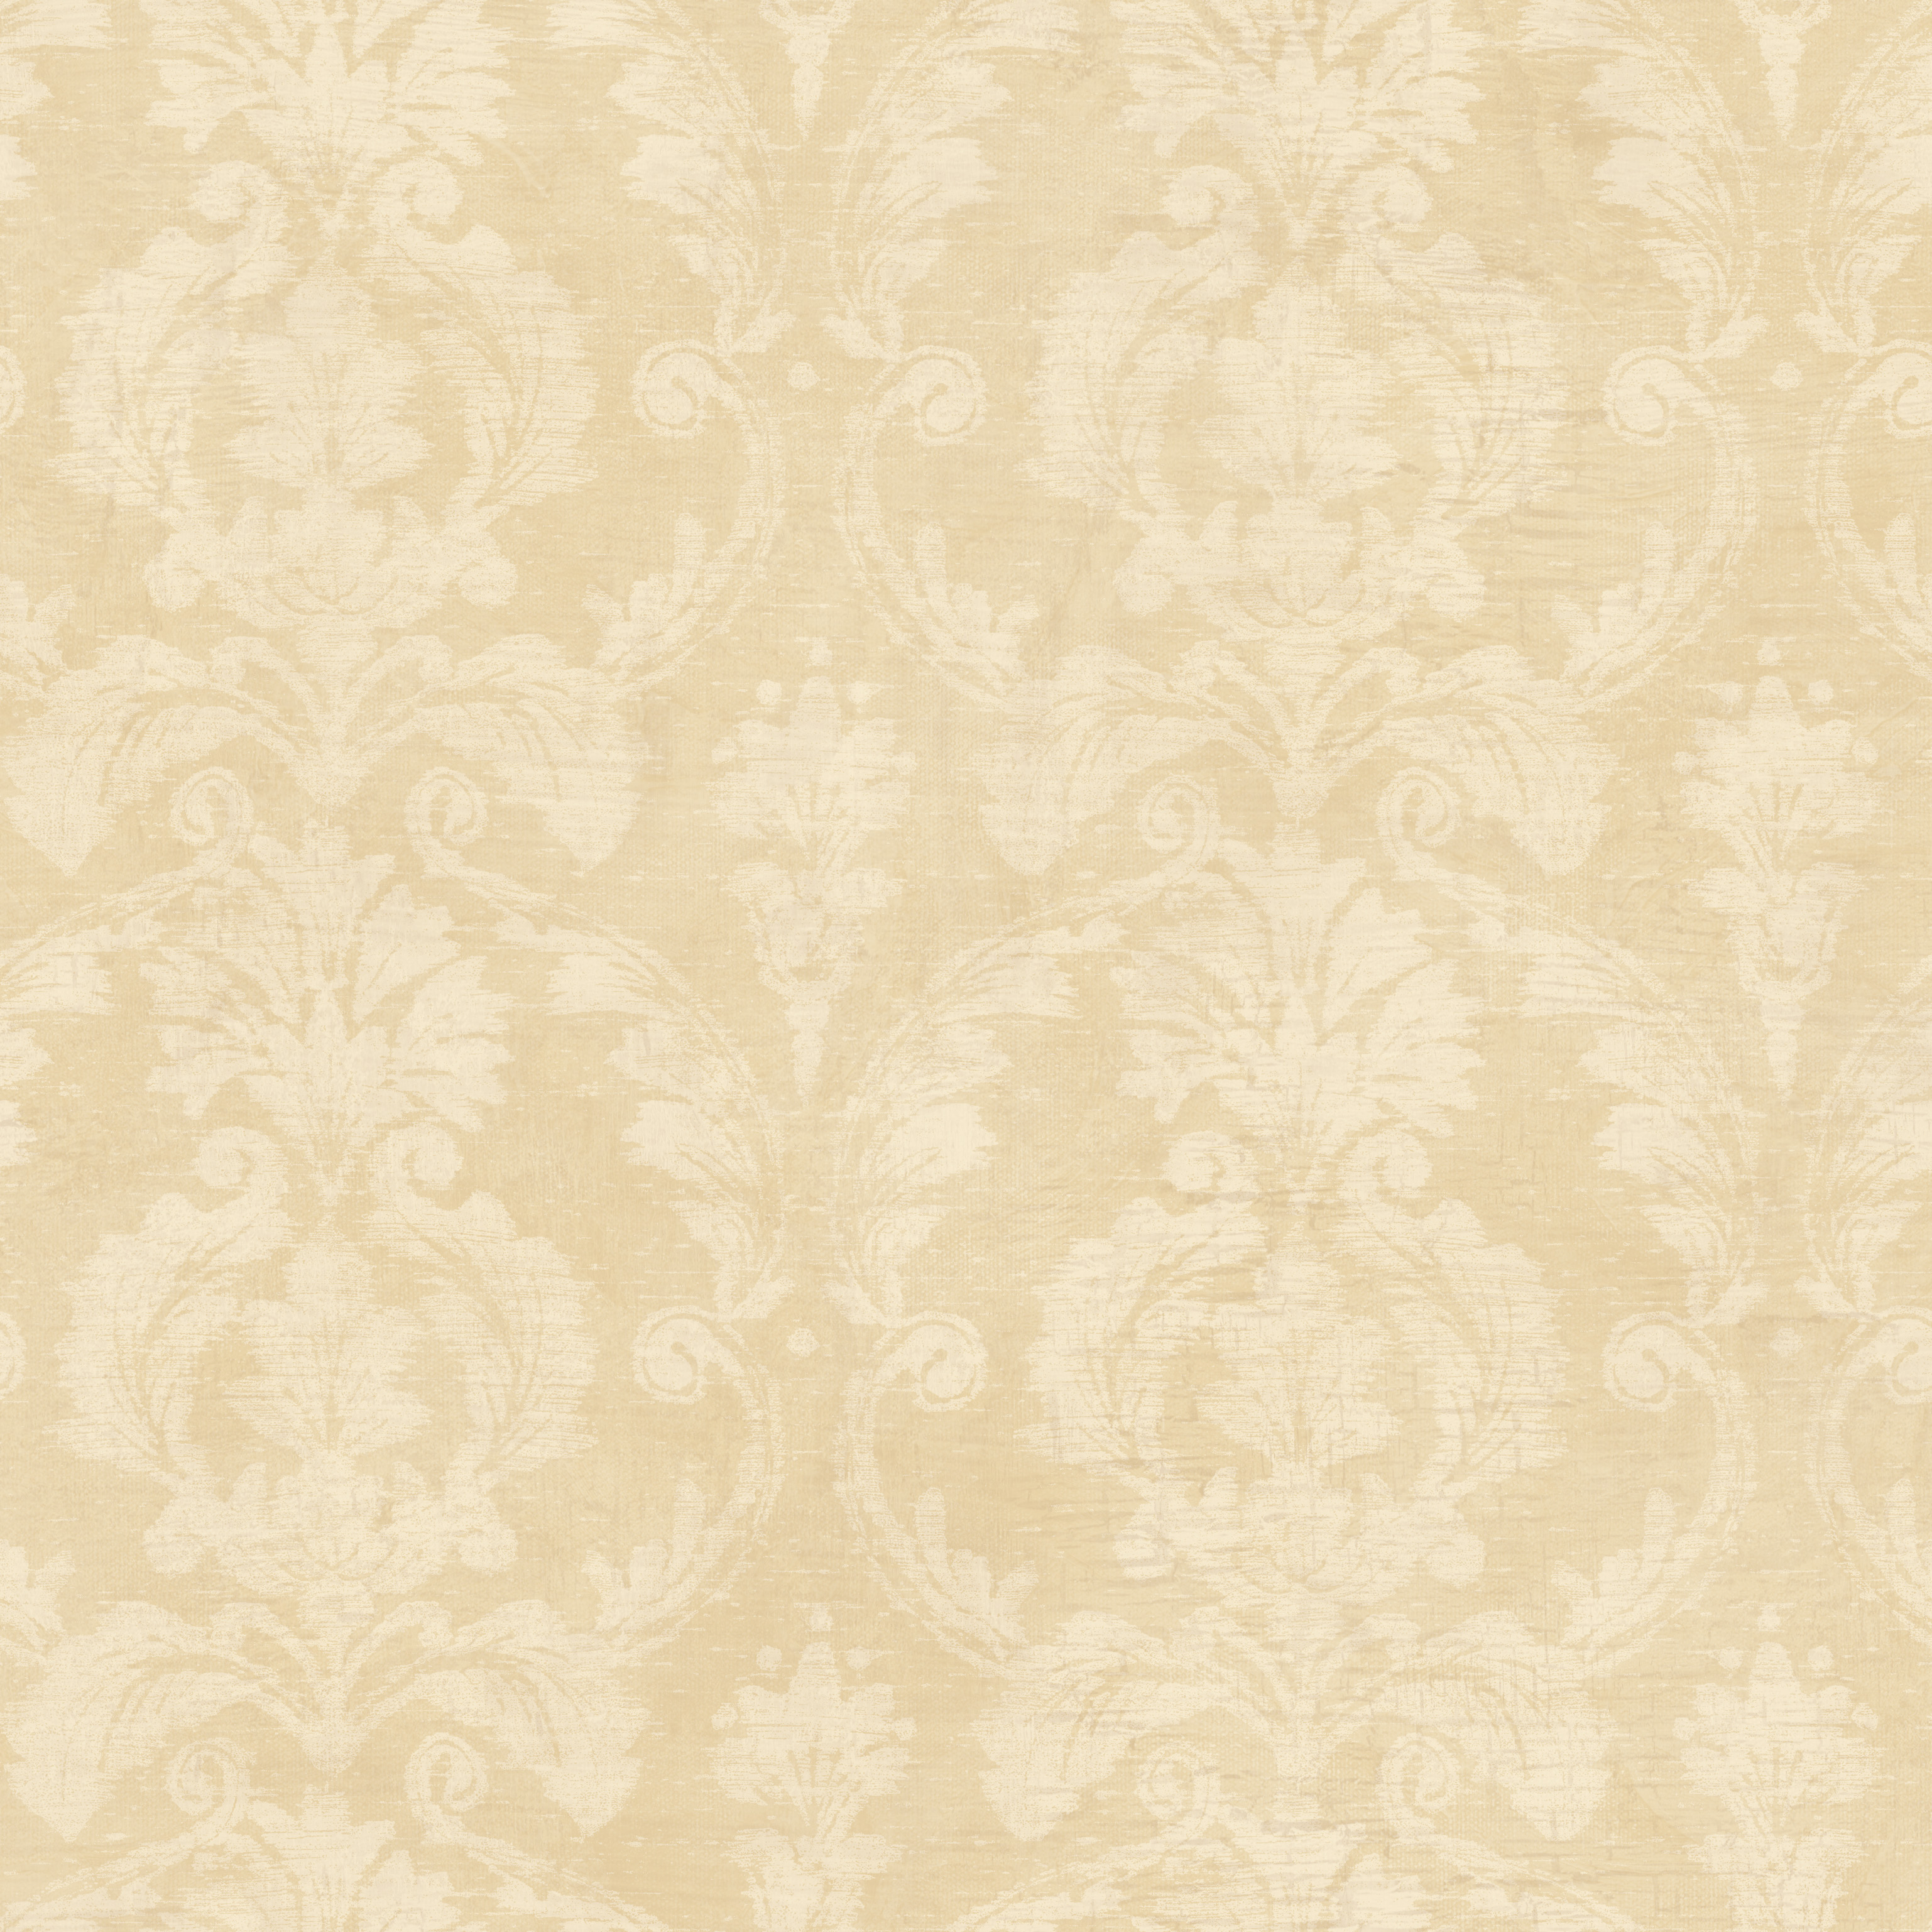 Picture of Bristol Taupe Torch Damask Wallpaper Wallpaper